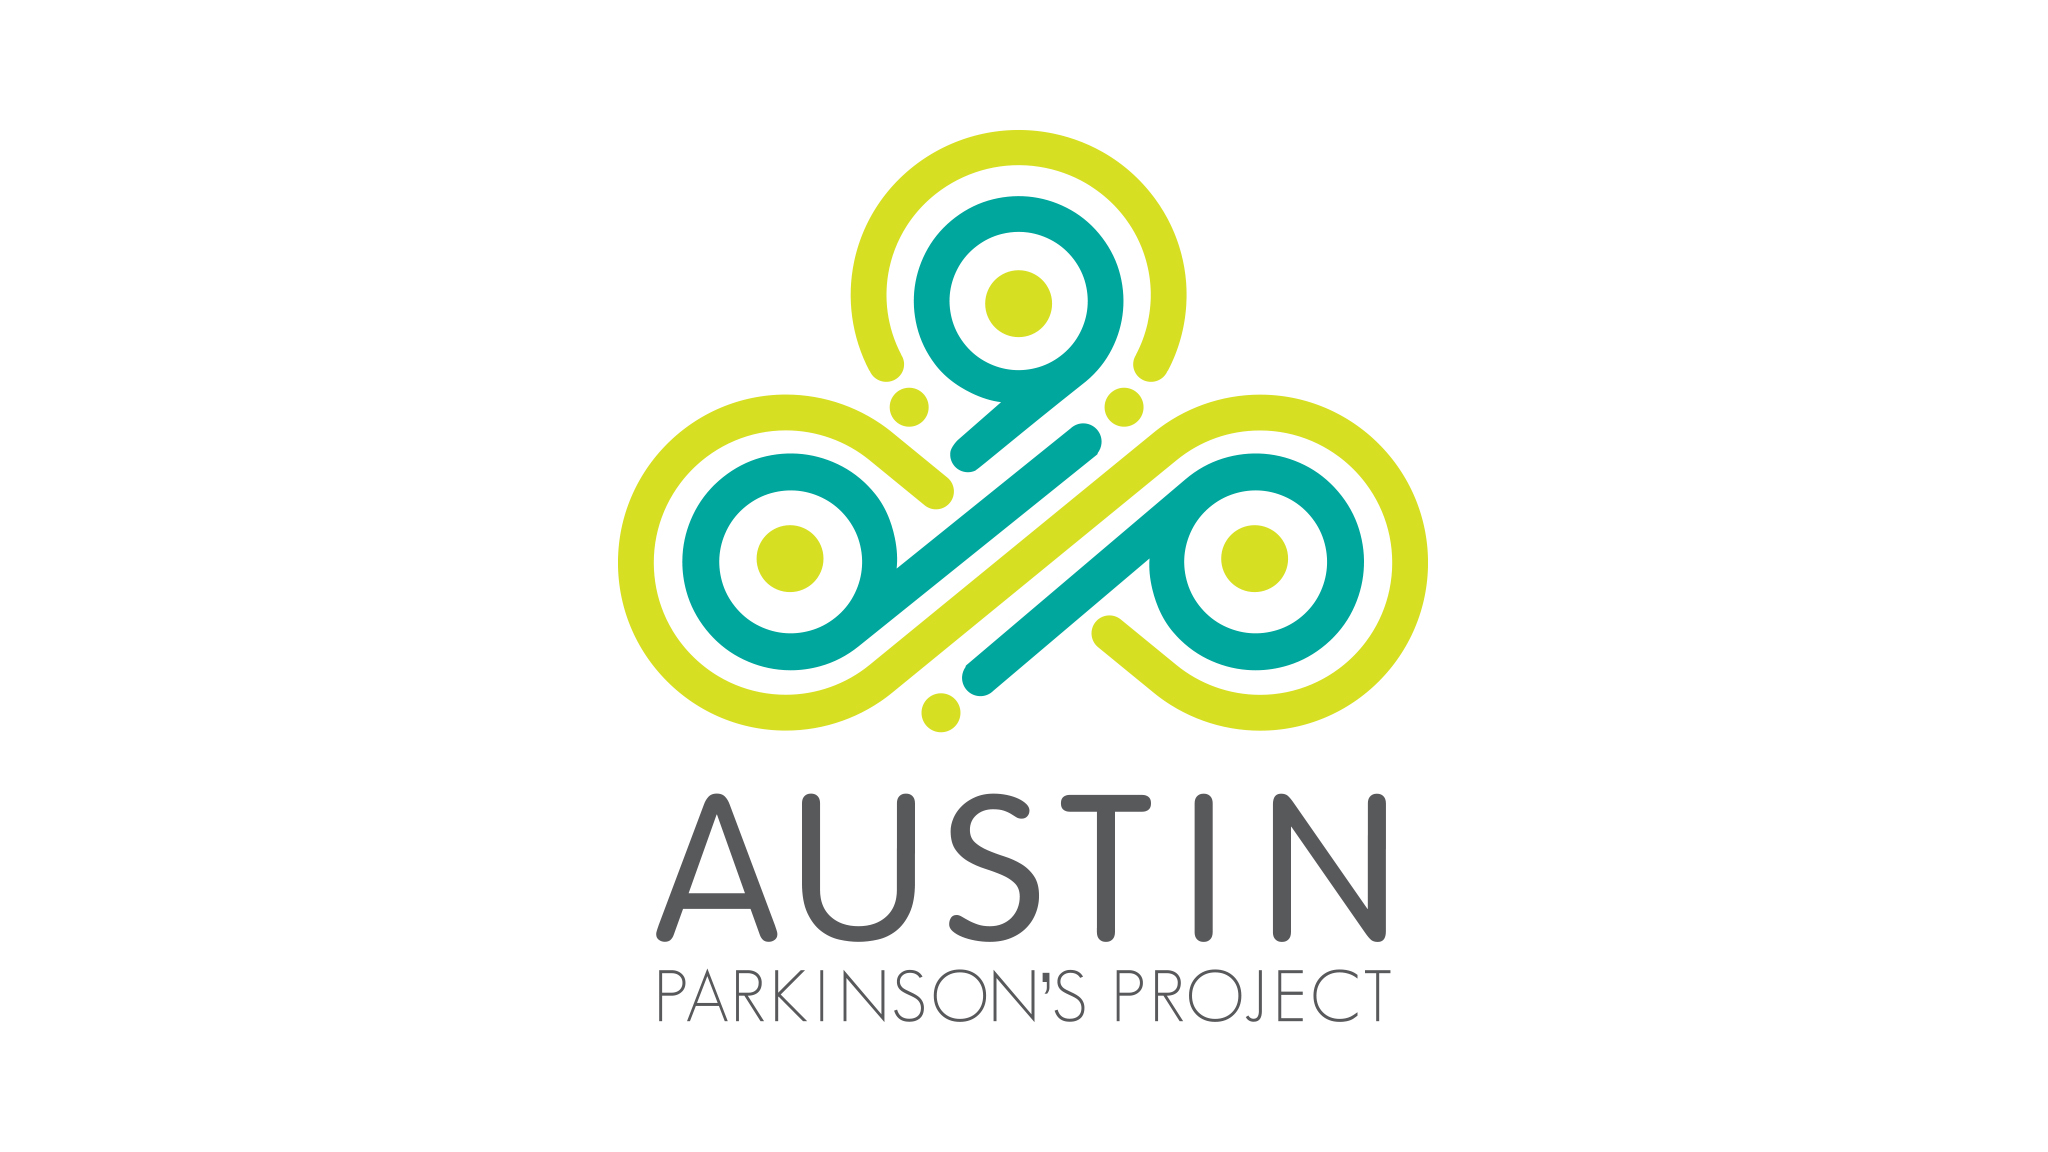 Austin Parkinson's Project Logo